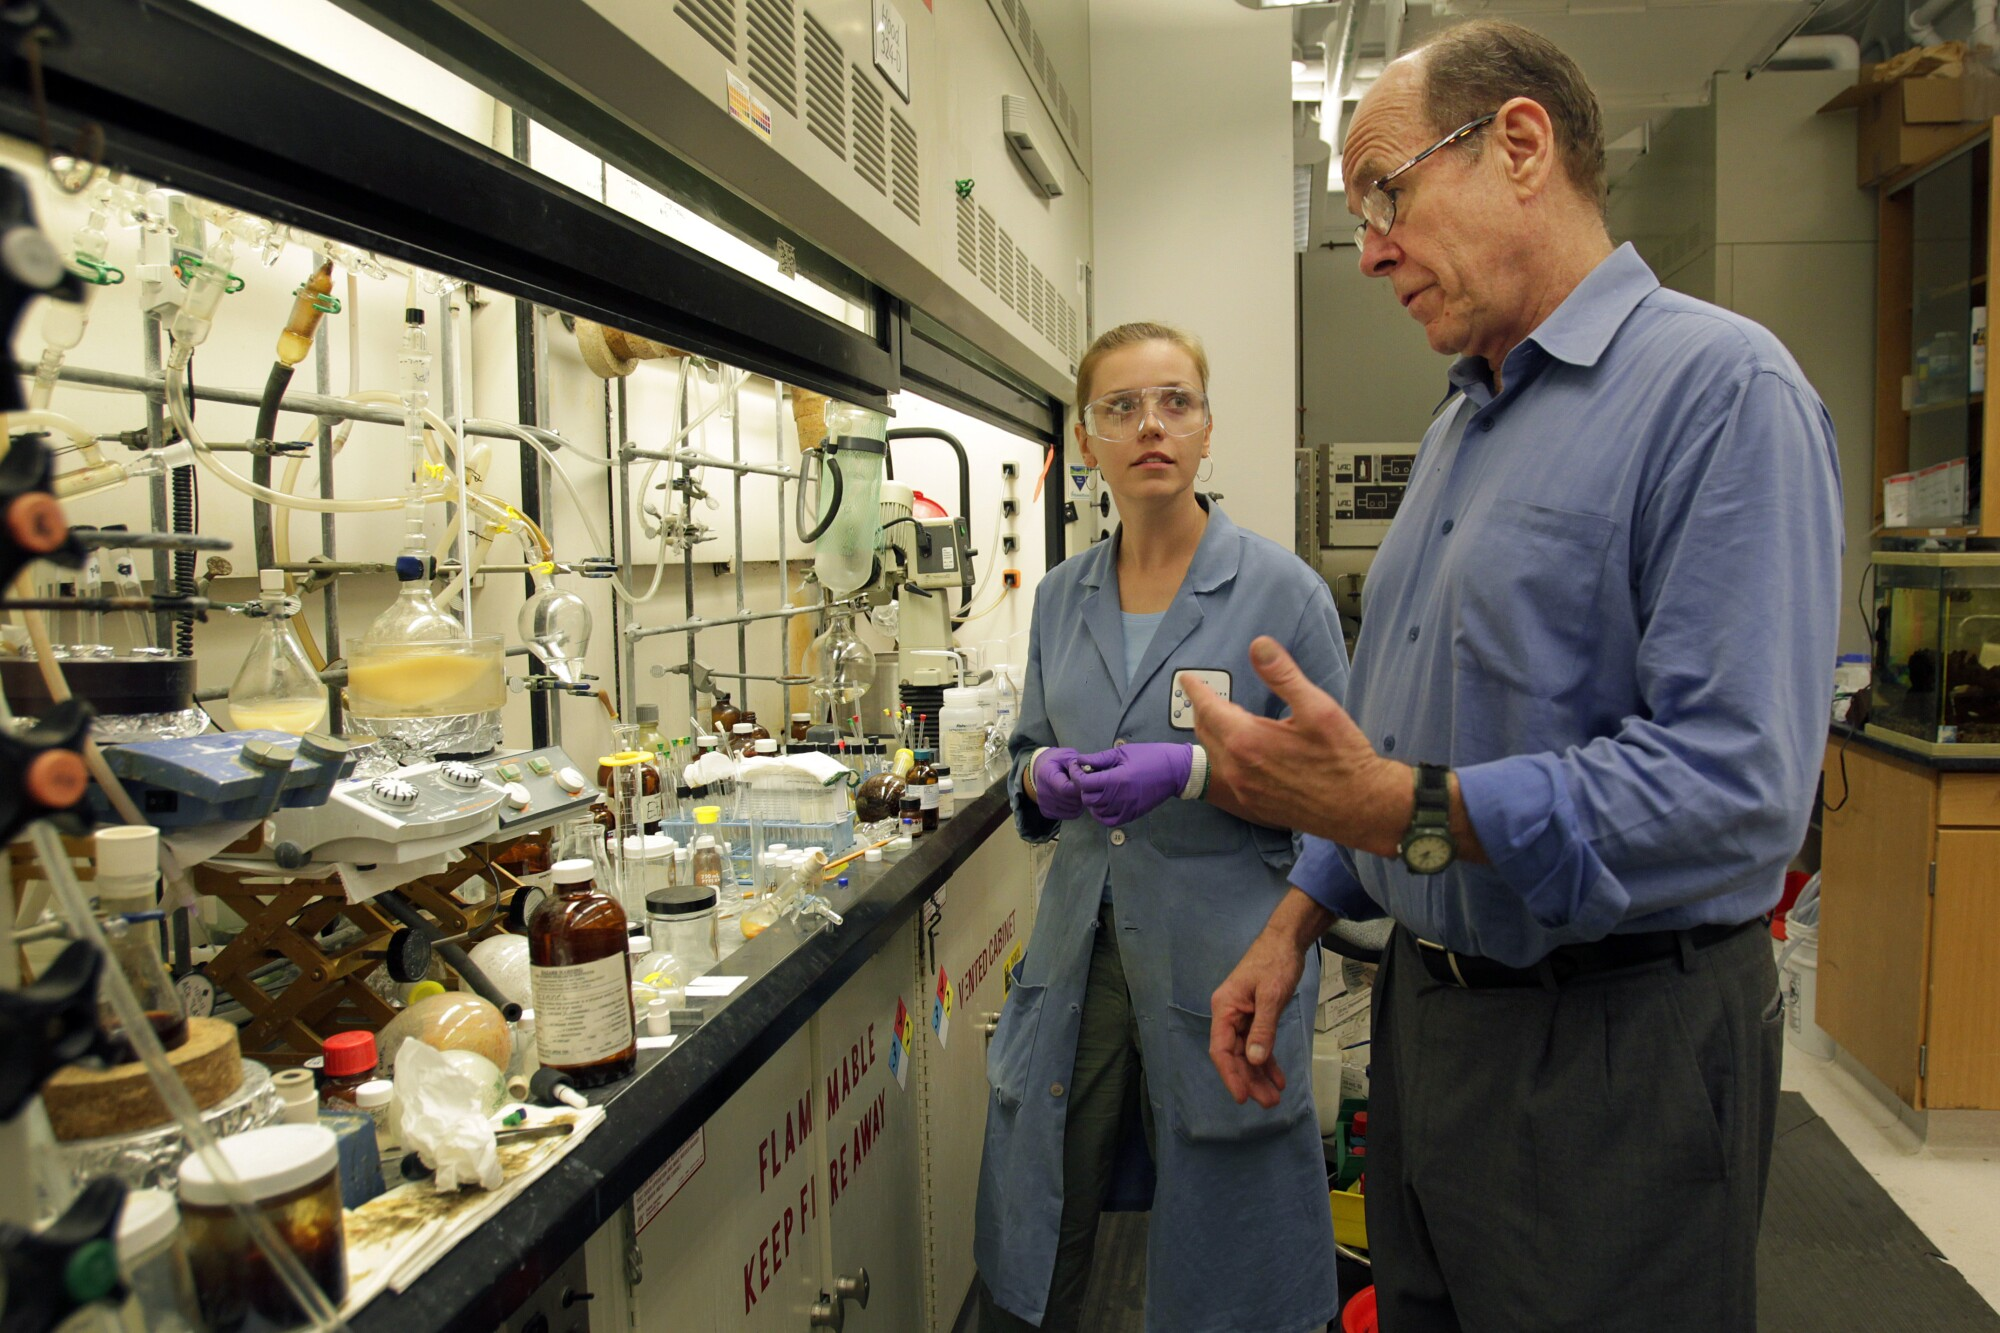 Barry Sharpless, W. M. Keck professor of chemistry at The Scripps Research Institute